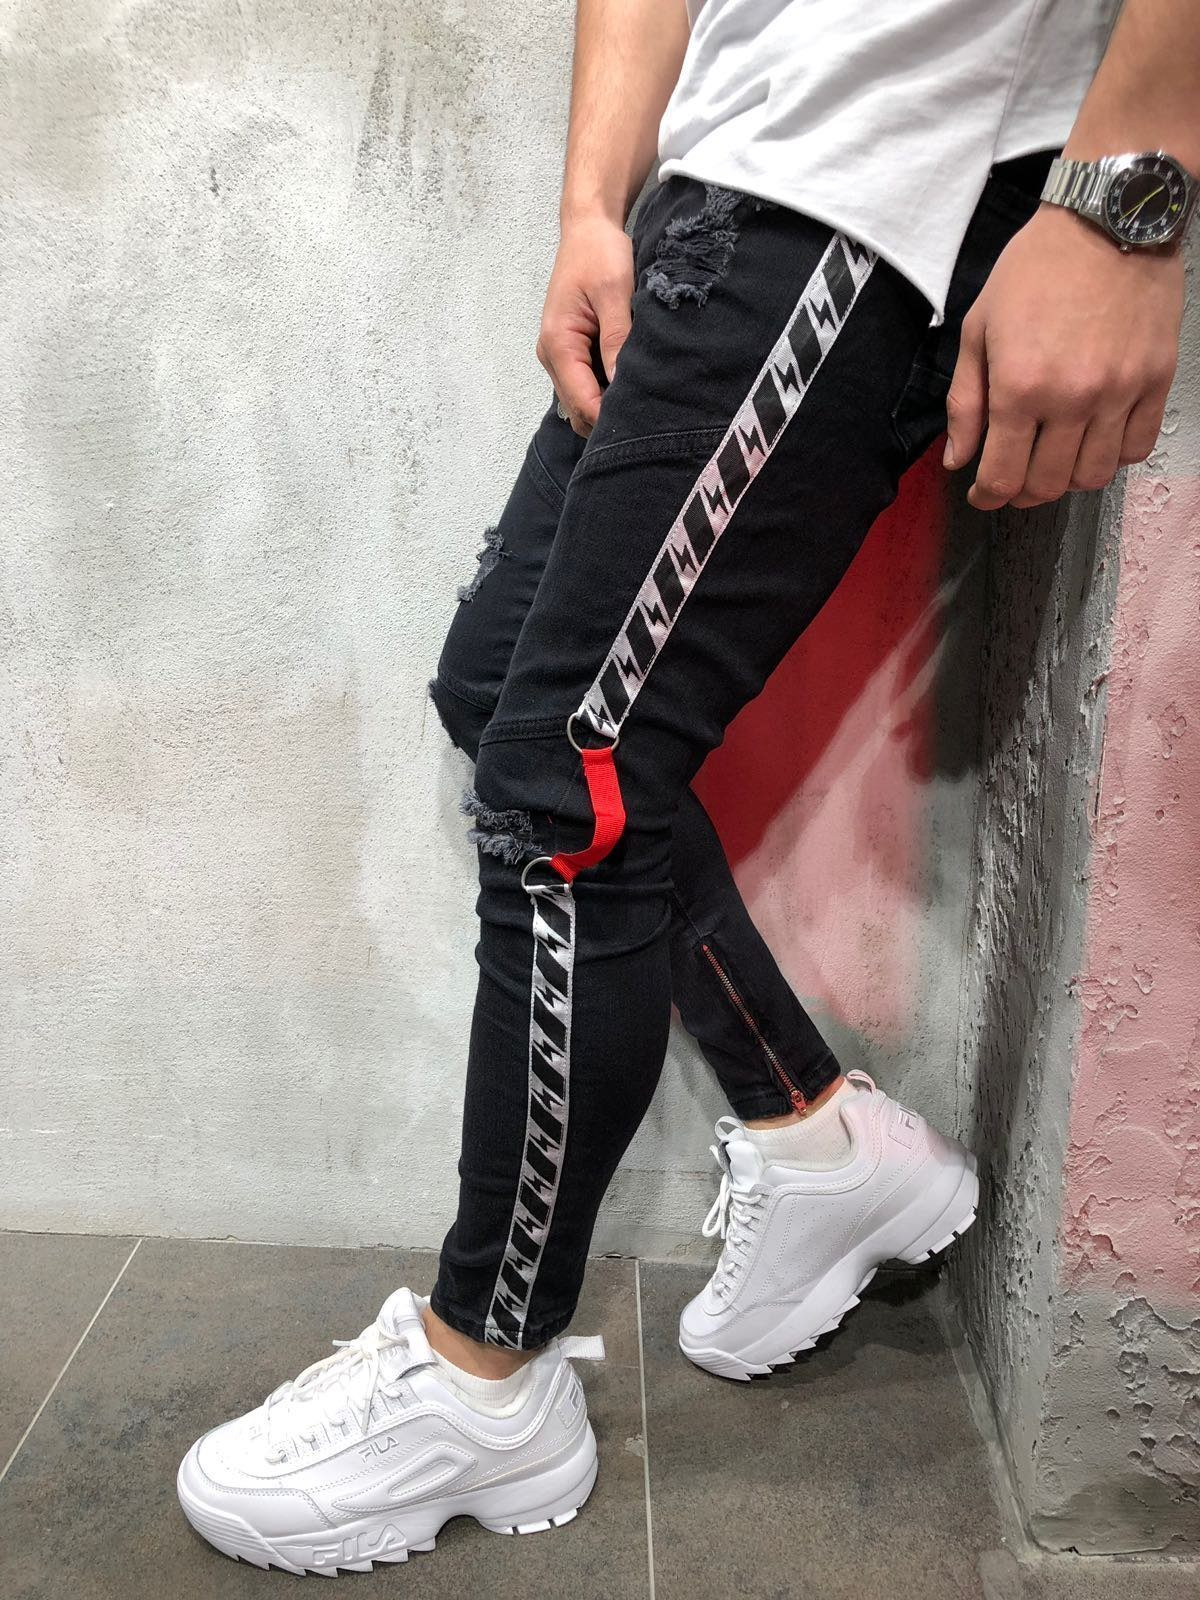 Mens Cool Designer Brand Black Jeans Skinny Ankle Zipper Stretch Slim Fit Hop Hop Pants With Side Stripe